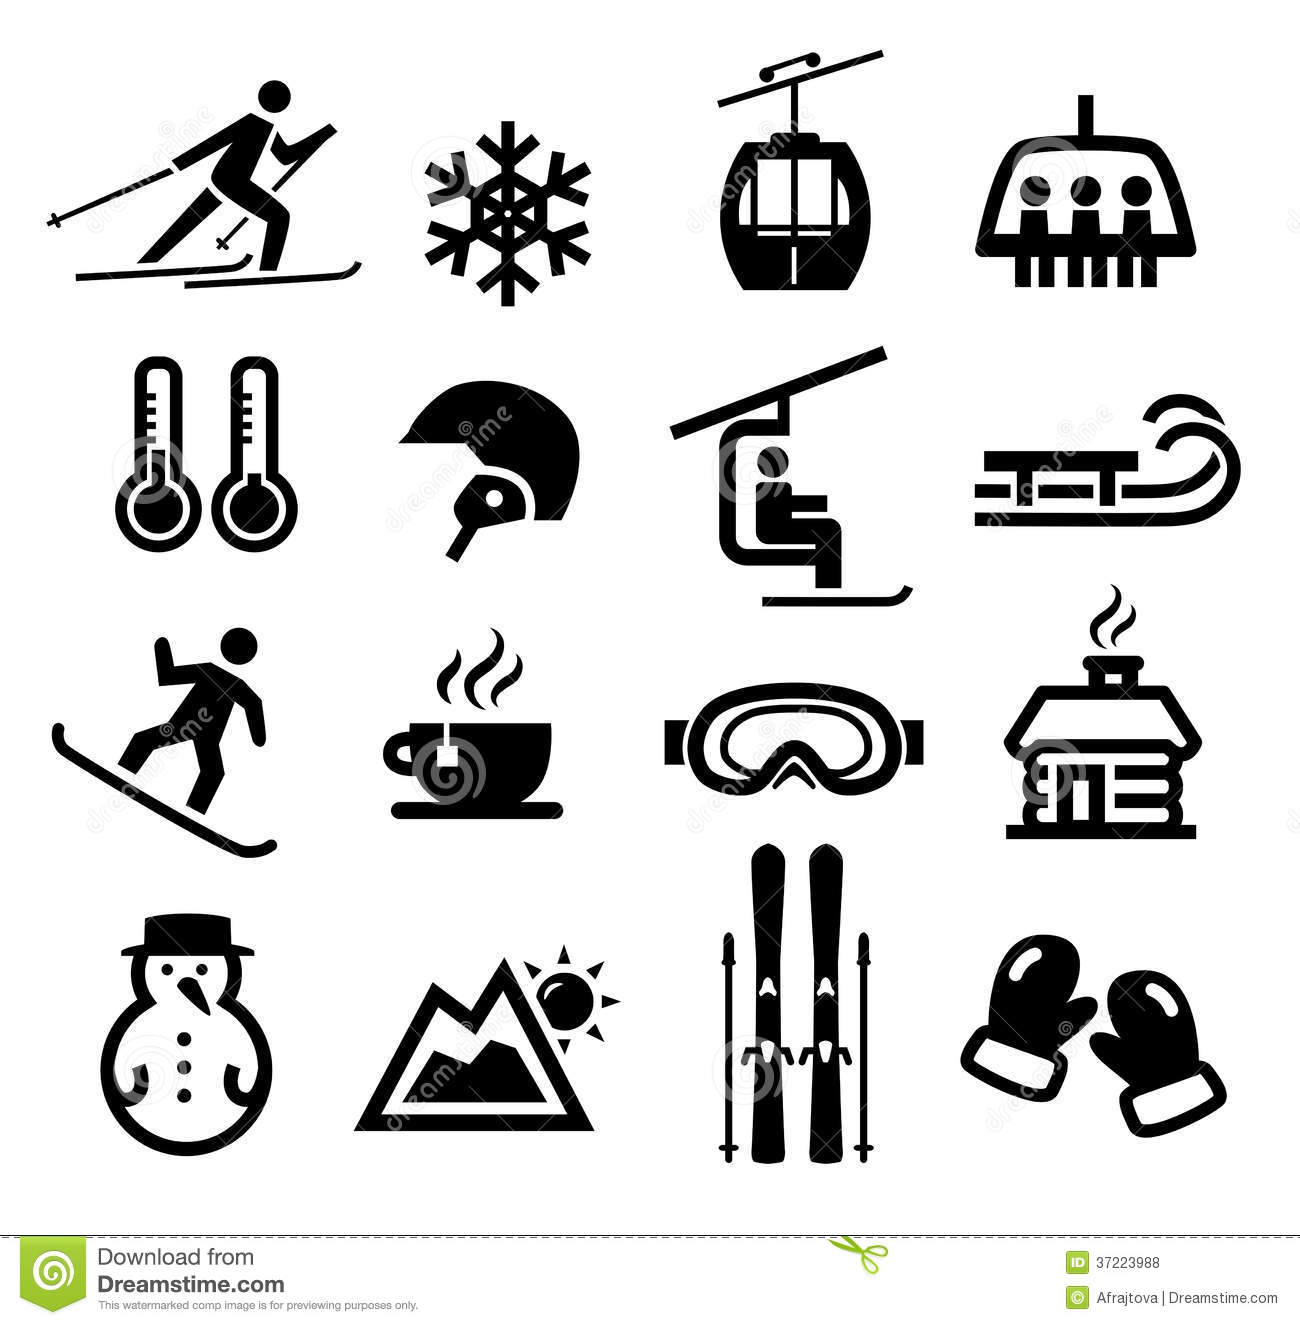 Clipart Collection Free Download